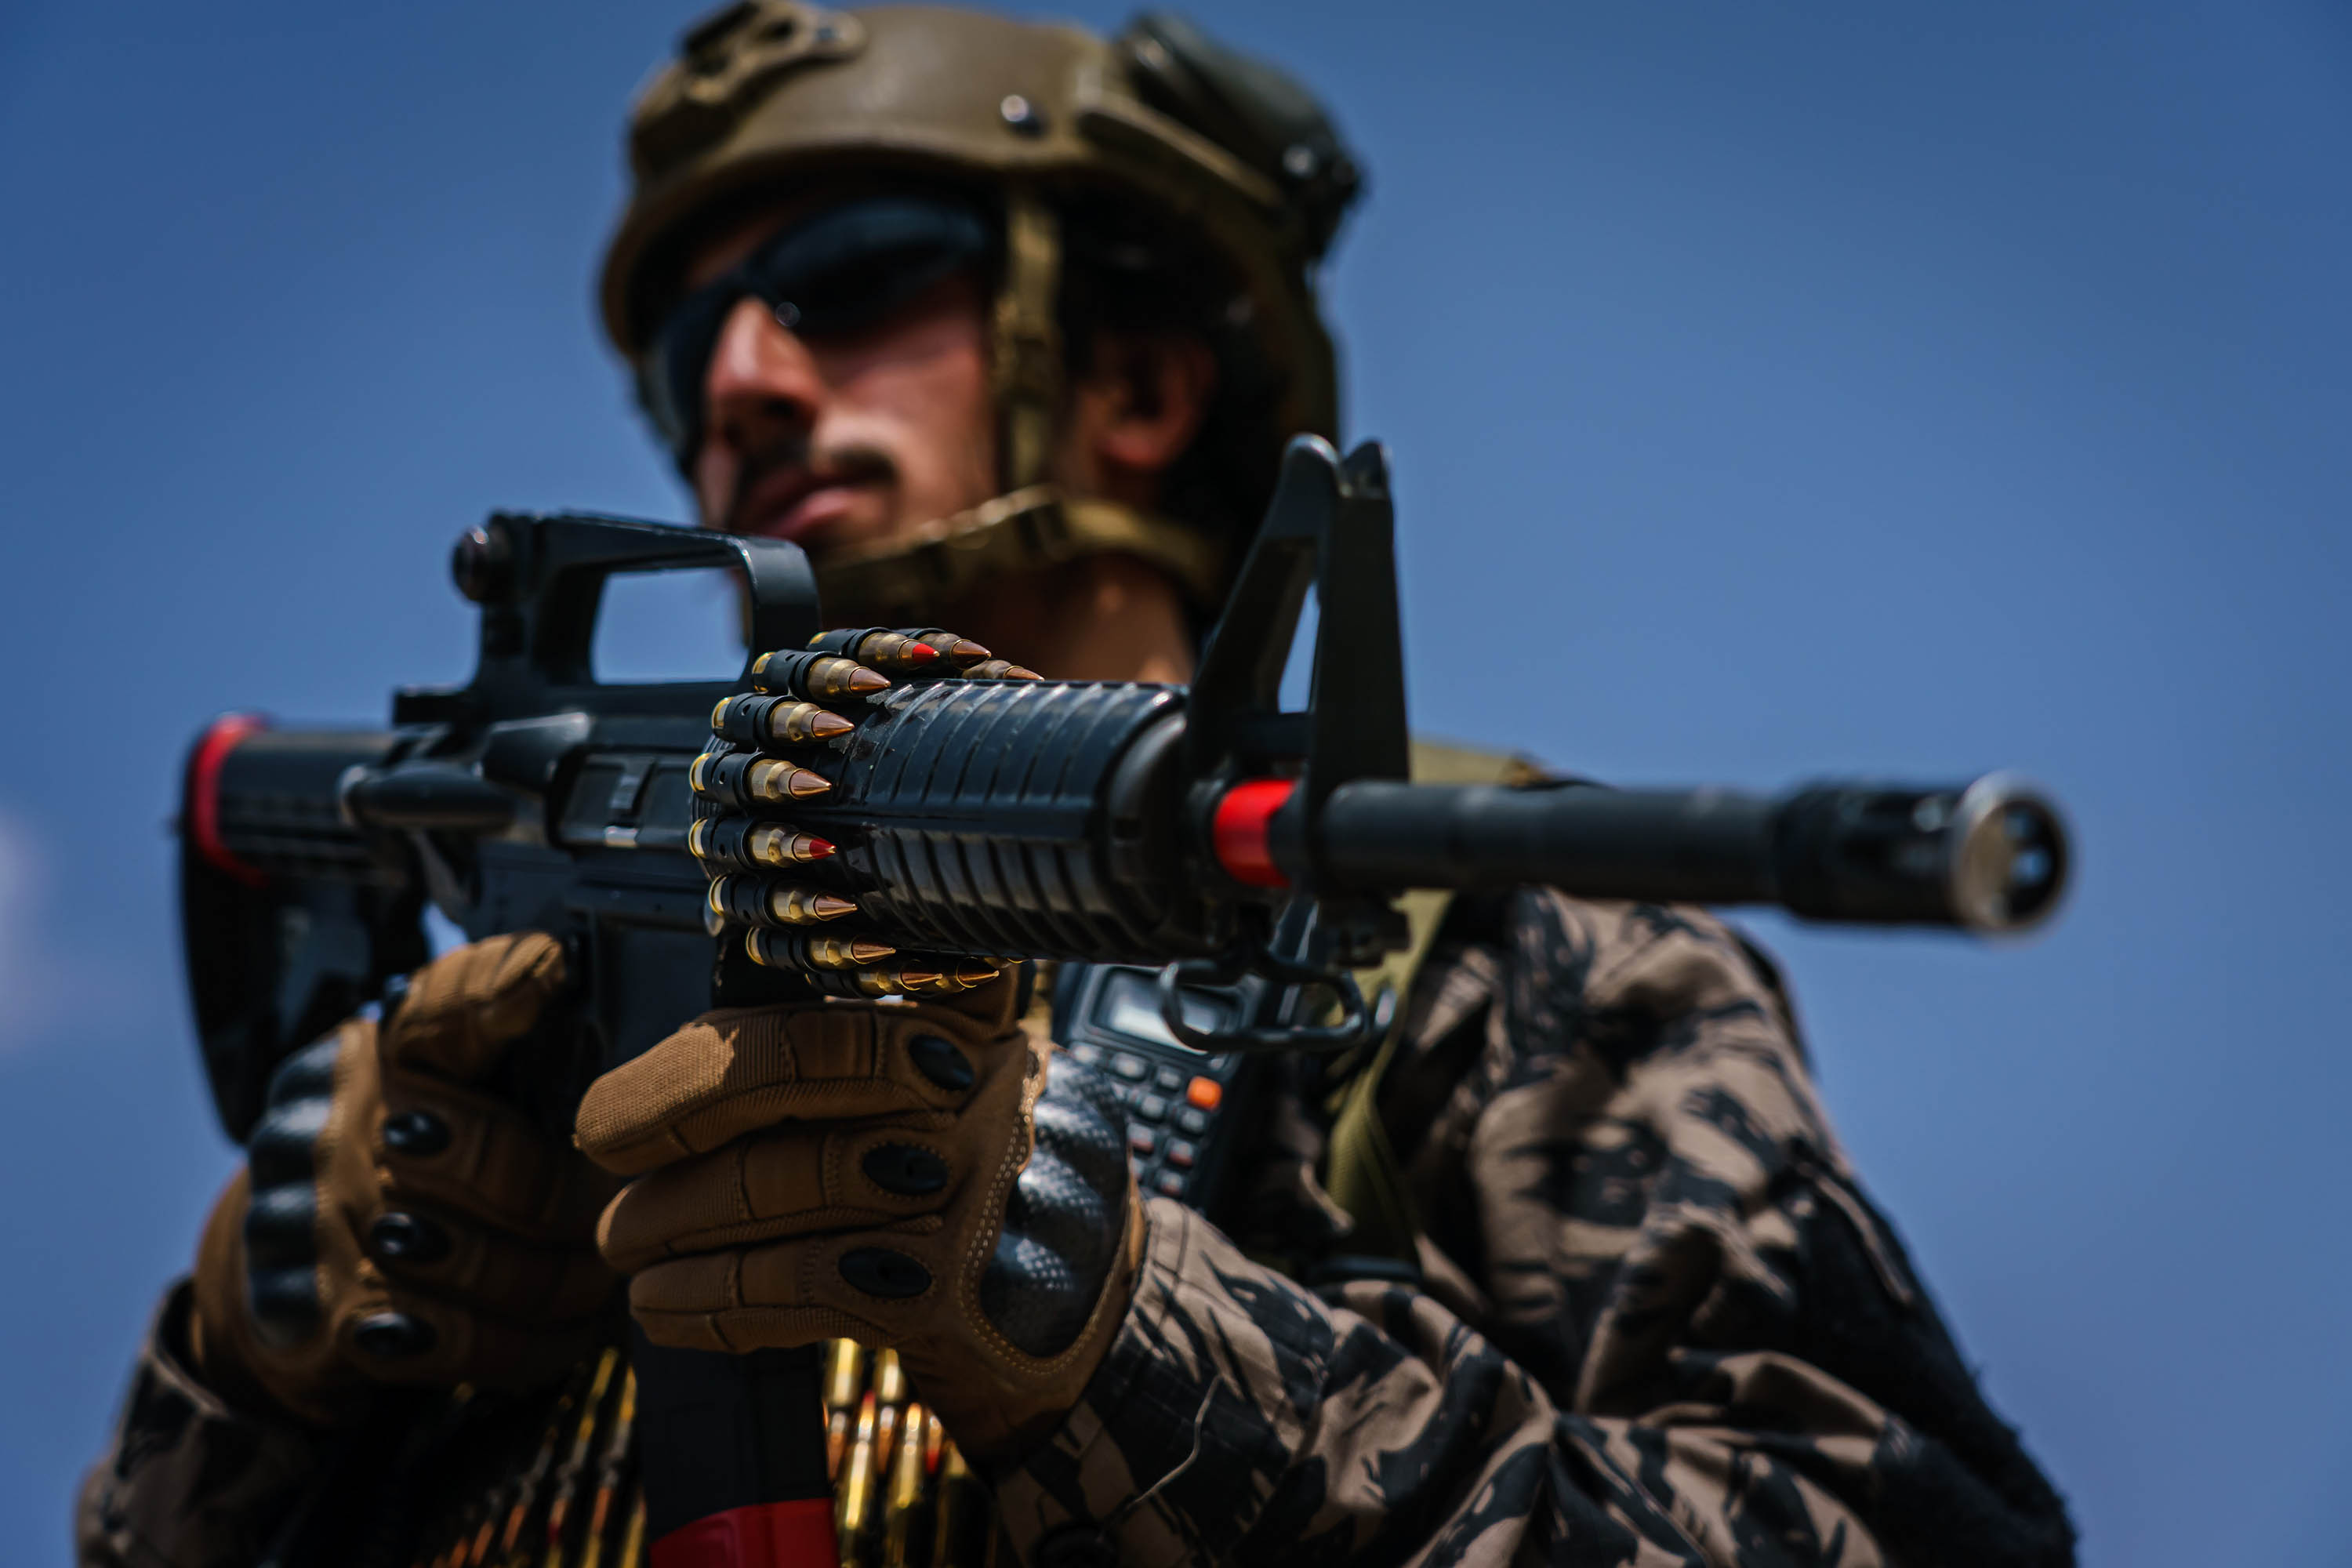 A Taliban fighter stands ready as the group takes control of the Hamid Karzai International Airport on Tuesday, August 31, in the wake of the American forces' withdrawal from Afghanistan.